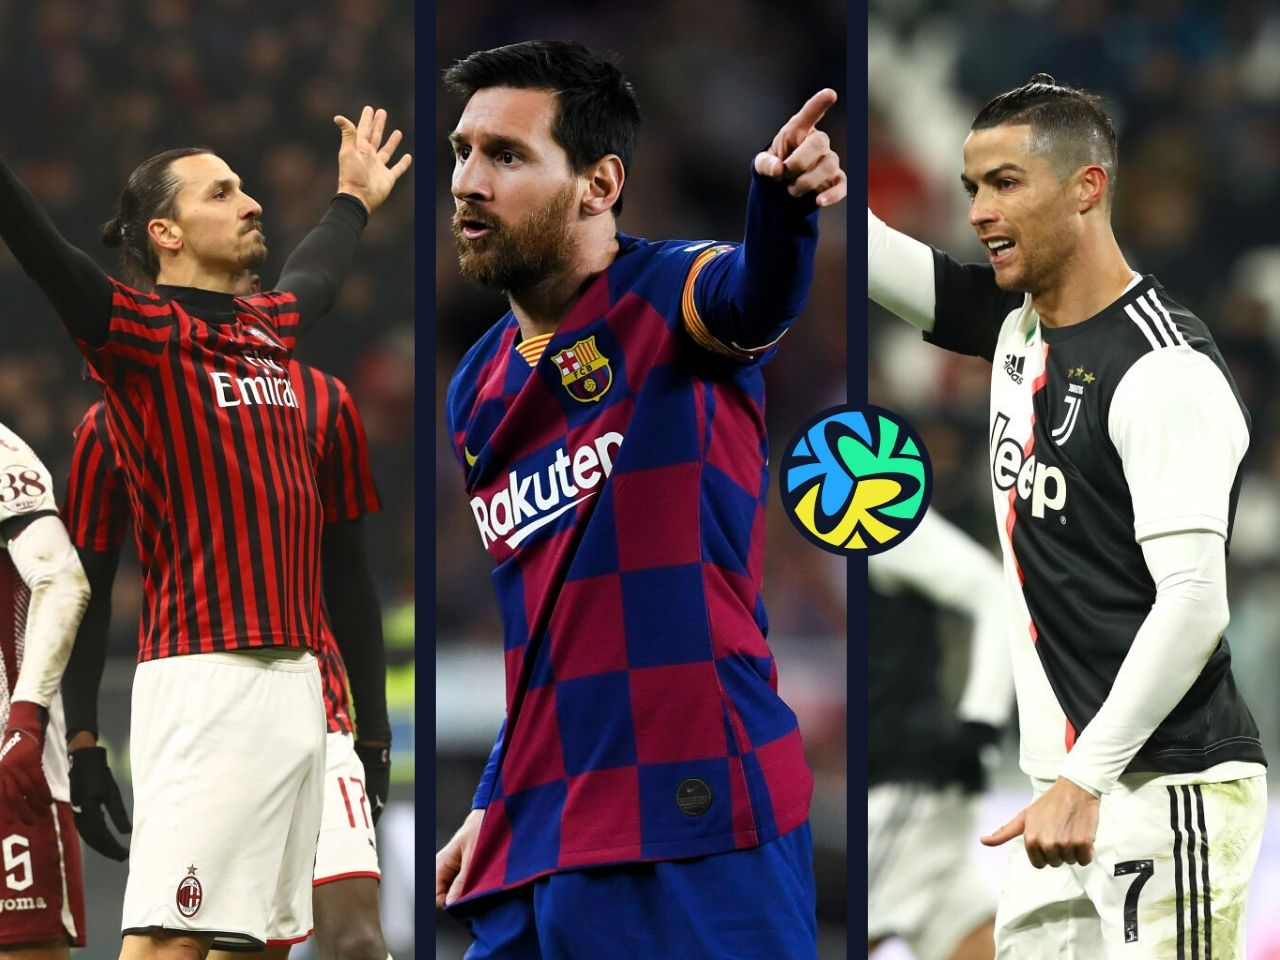 Top 5 Most Influential Players In World Football Right Now Ronaldo Com